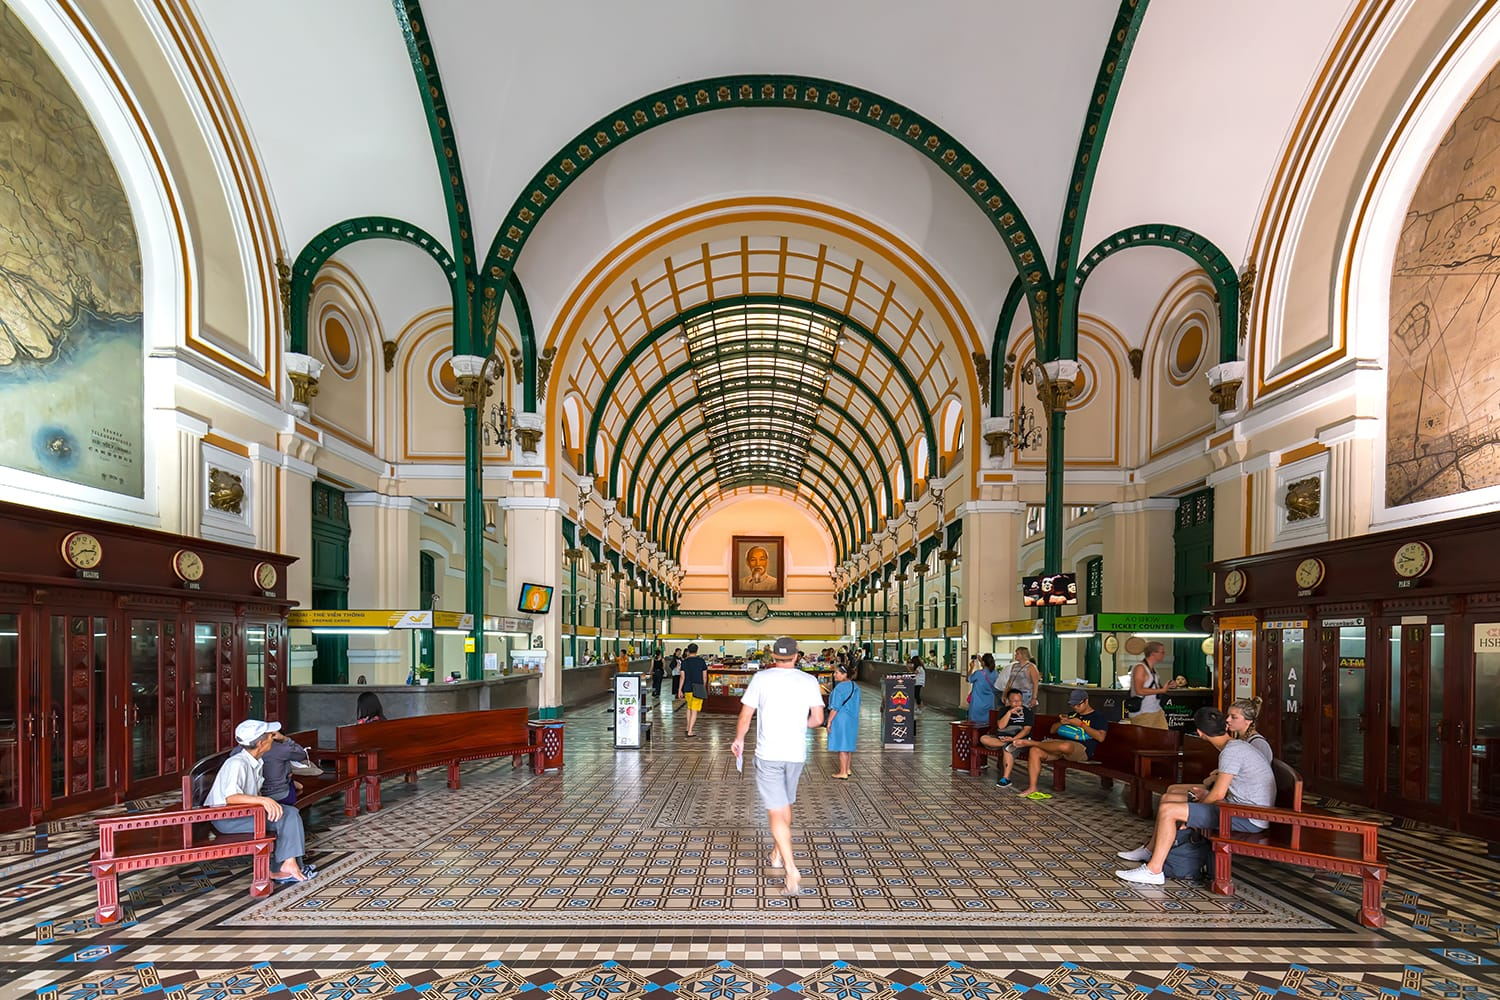 Interior of Saigon Central Post Office. It was built by the French in 1886 and is now a tourist attraction Popular in Ho Chi Minh city, Vietnam.